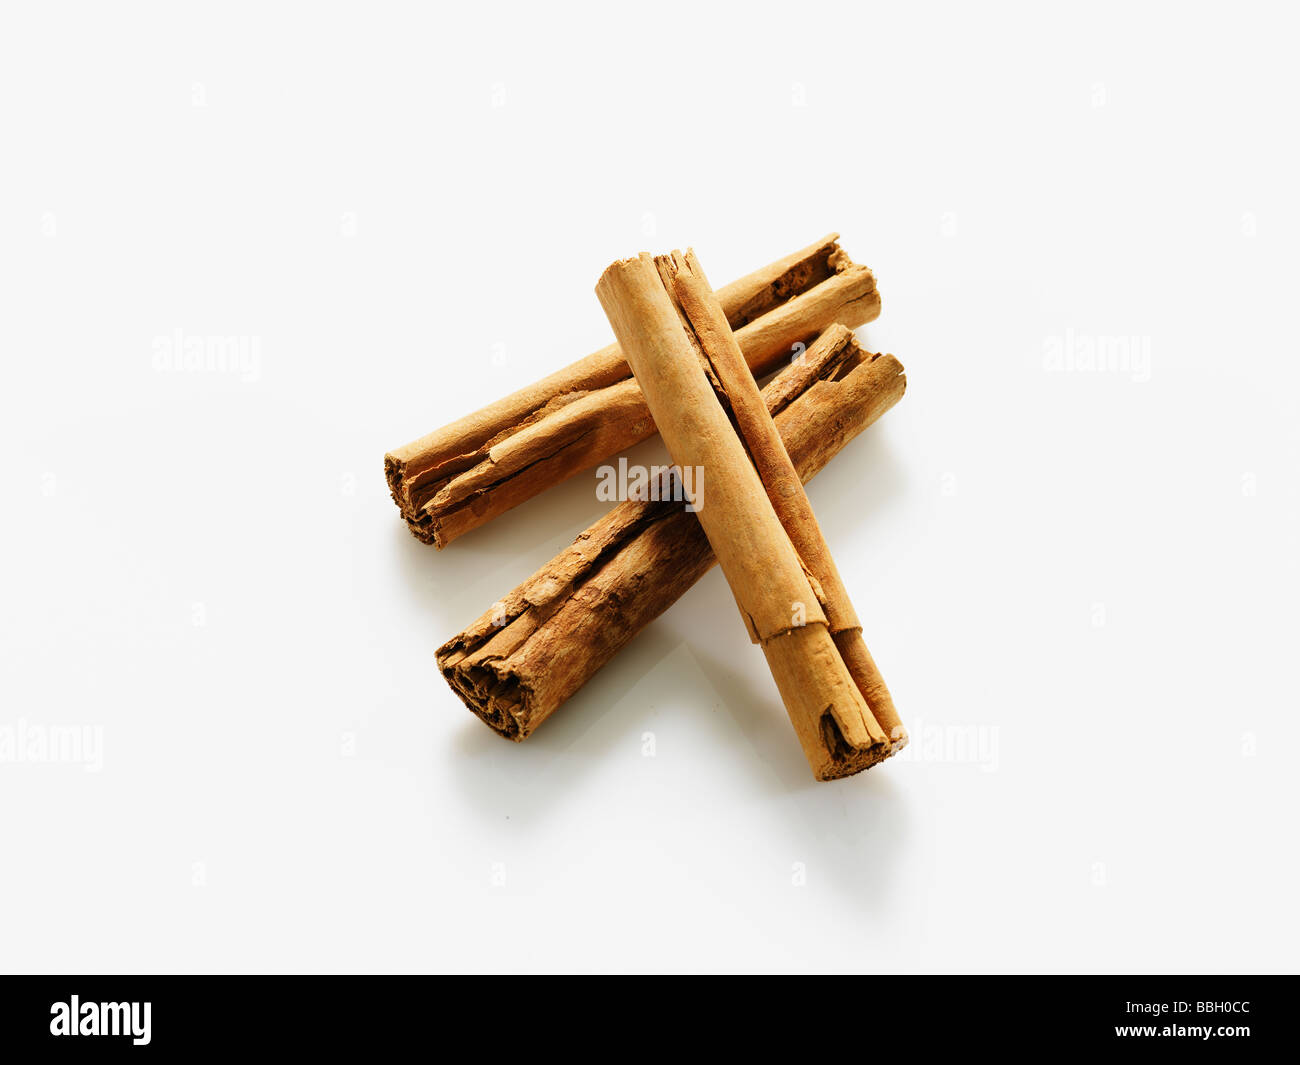 Cinnamon sticks overlaying on white studio background - Stock Image